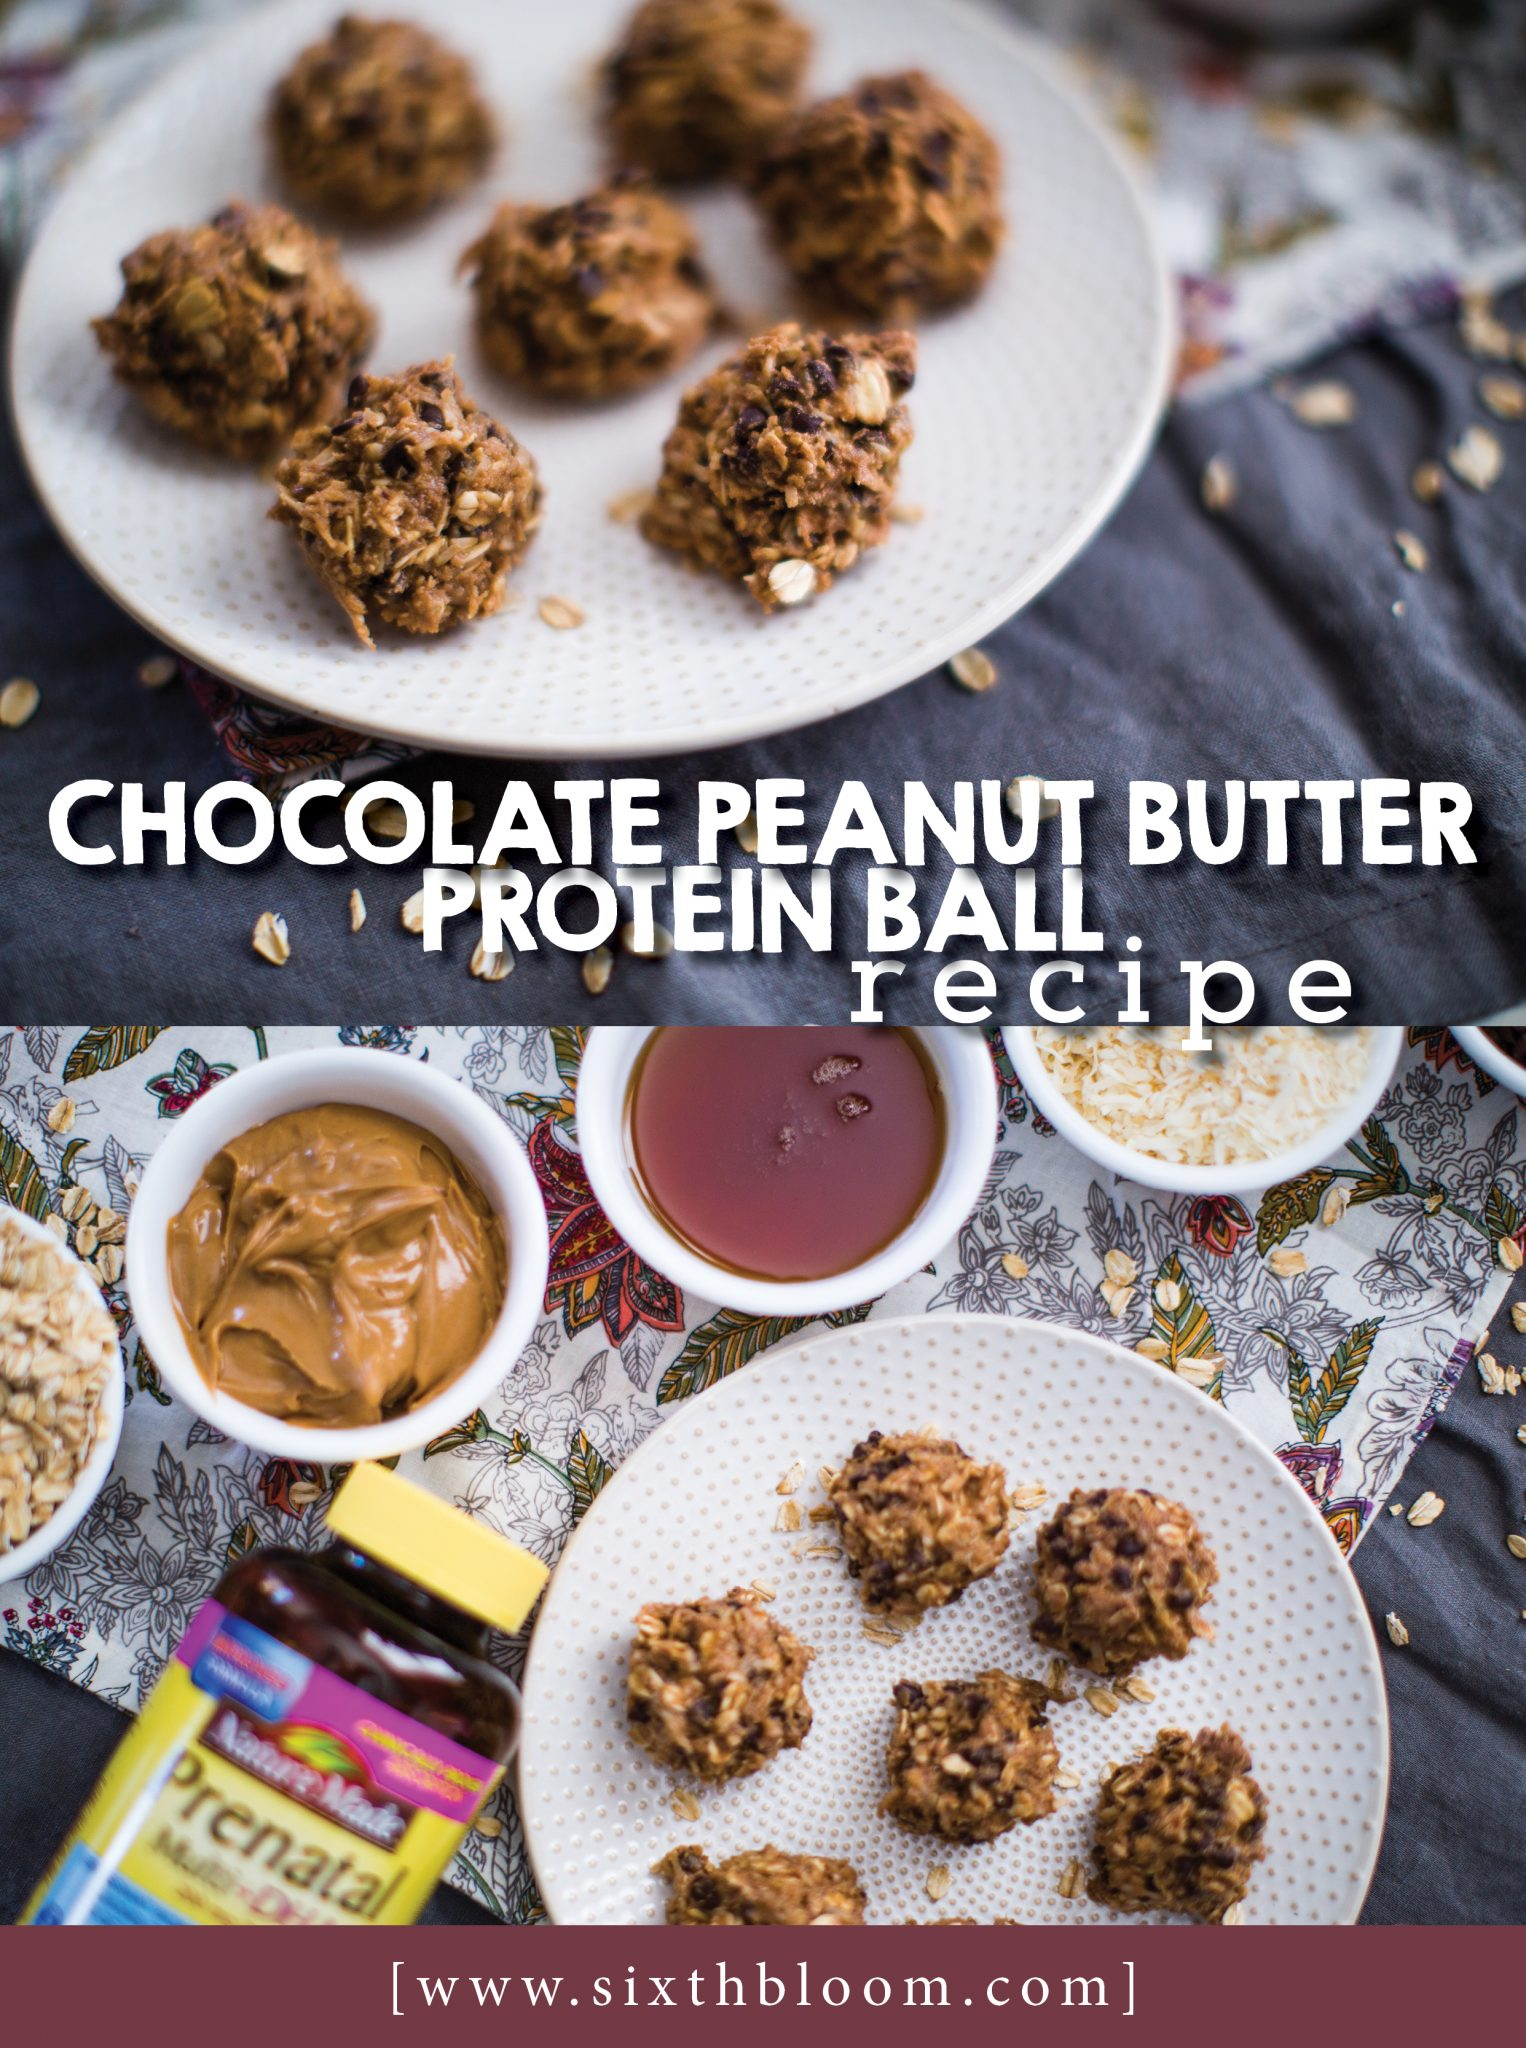 Chocolate Peanut Butter Protein Ball Recipe